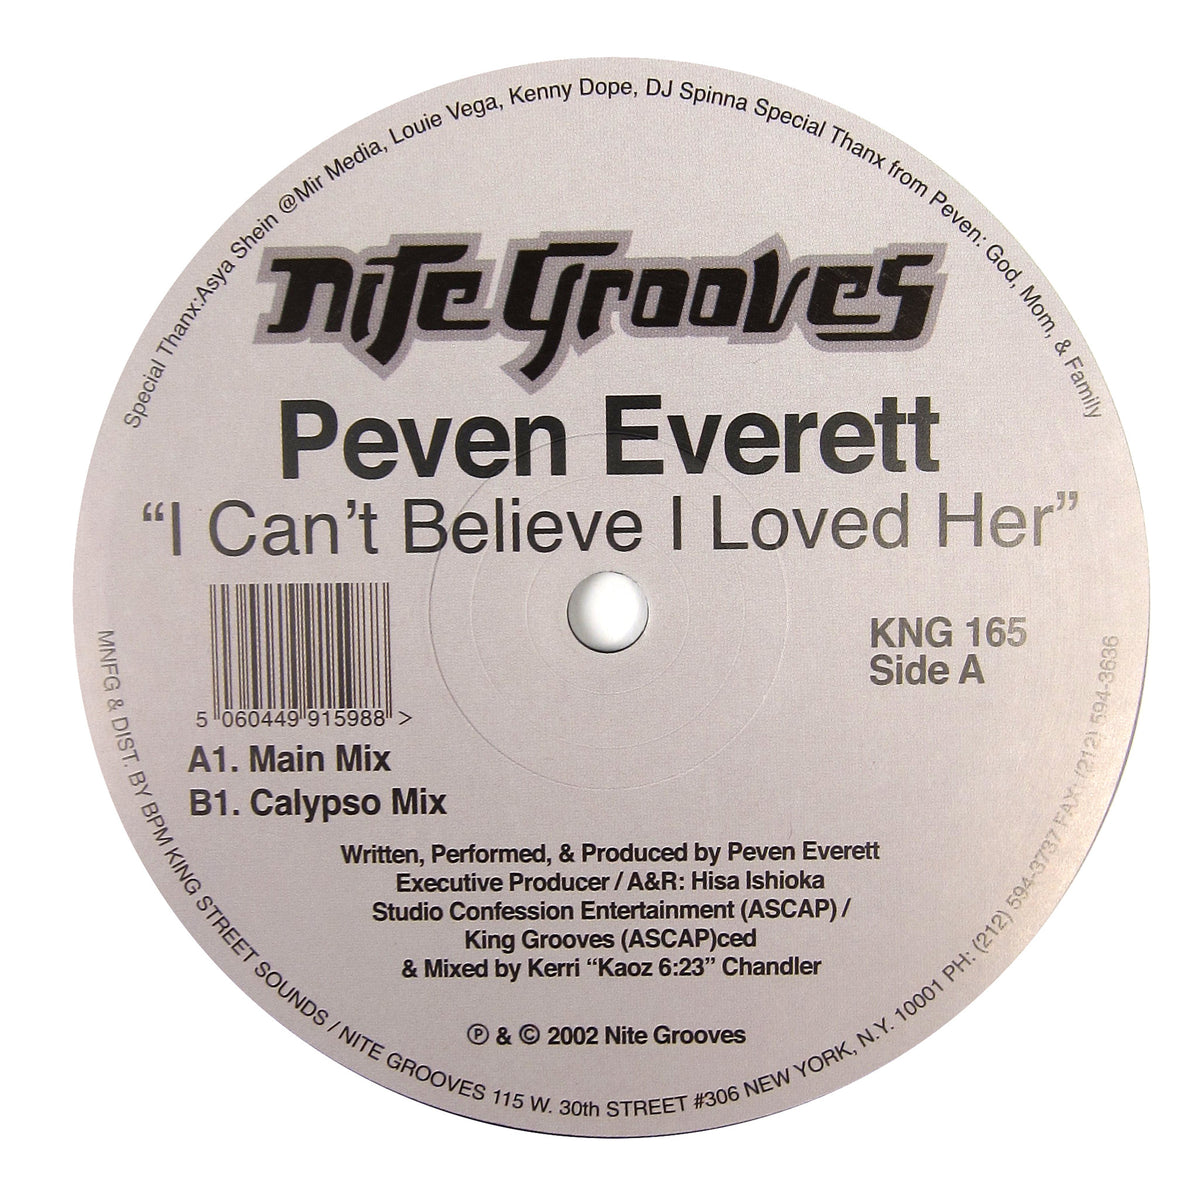 Peven Everett: I Can't Believe I Loved Her Vinyl 12""